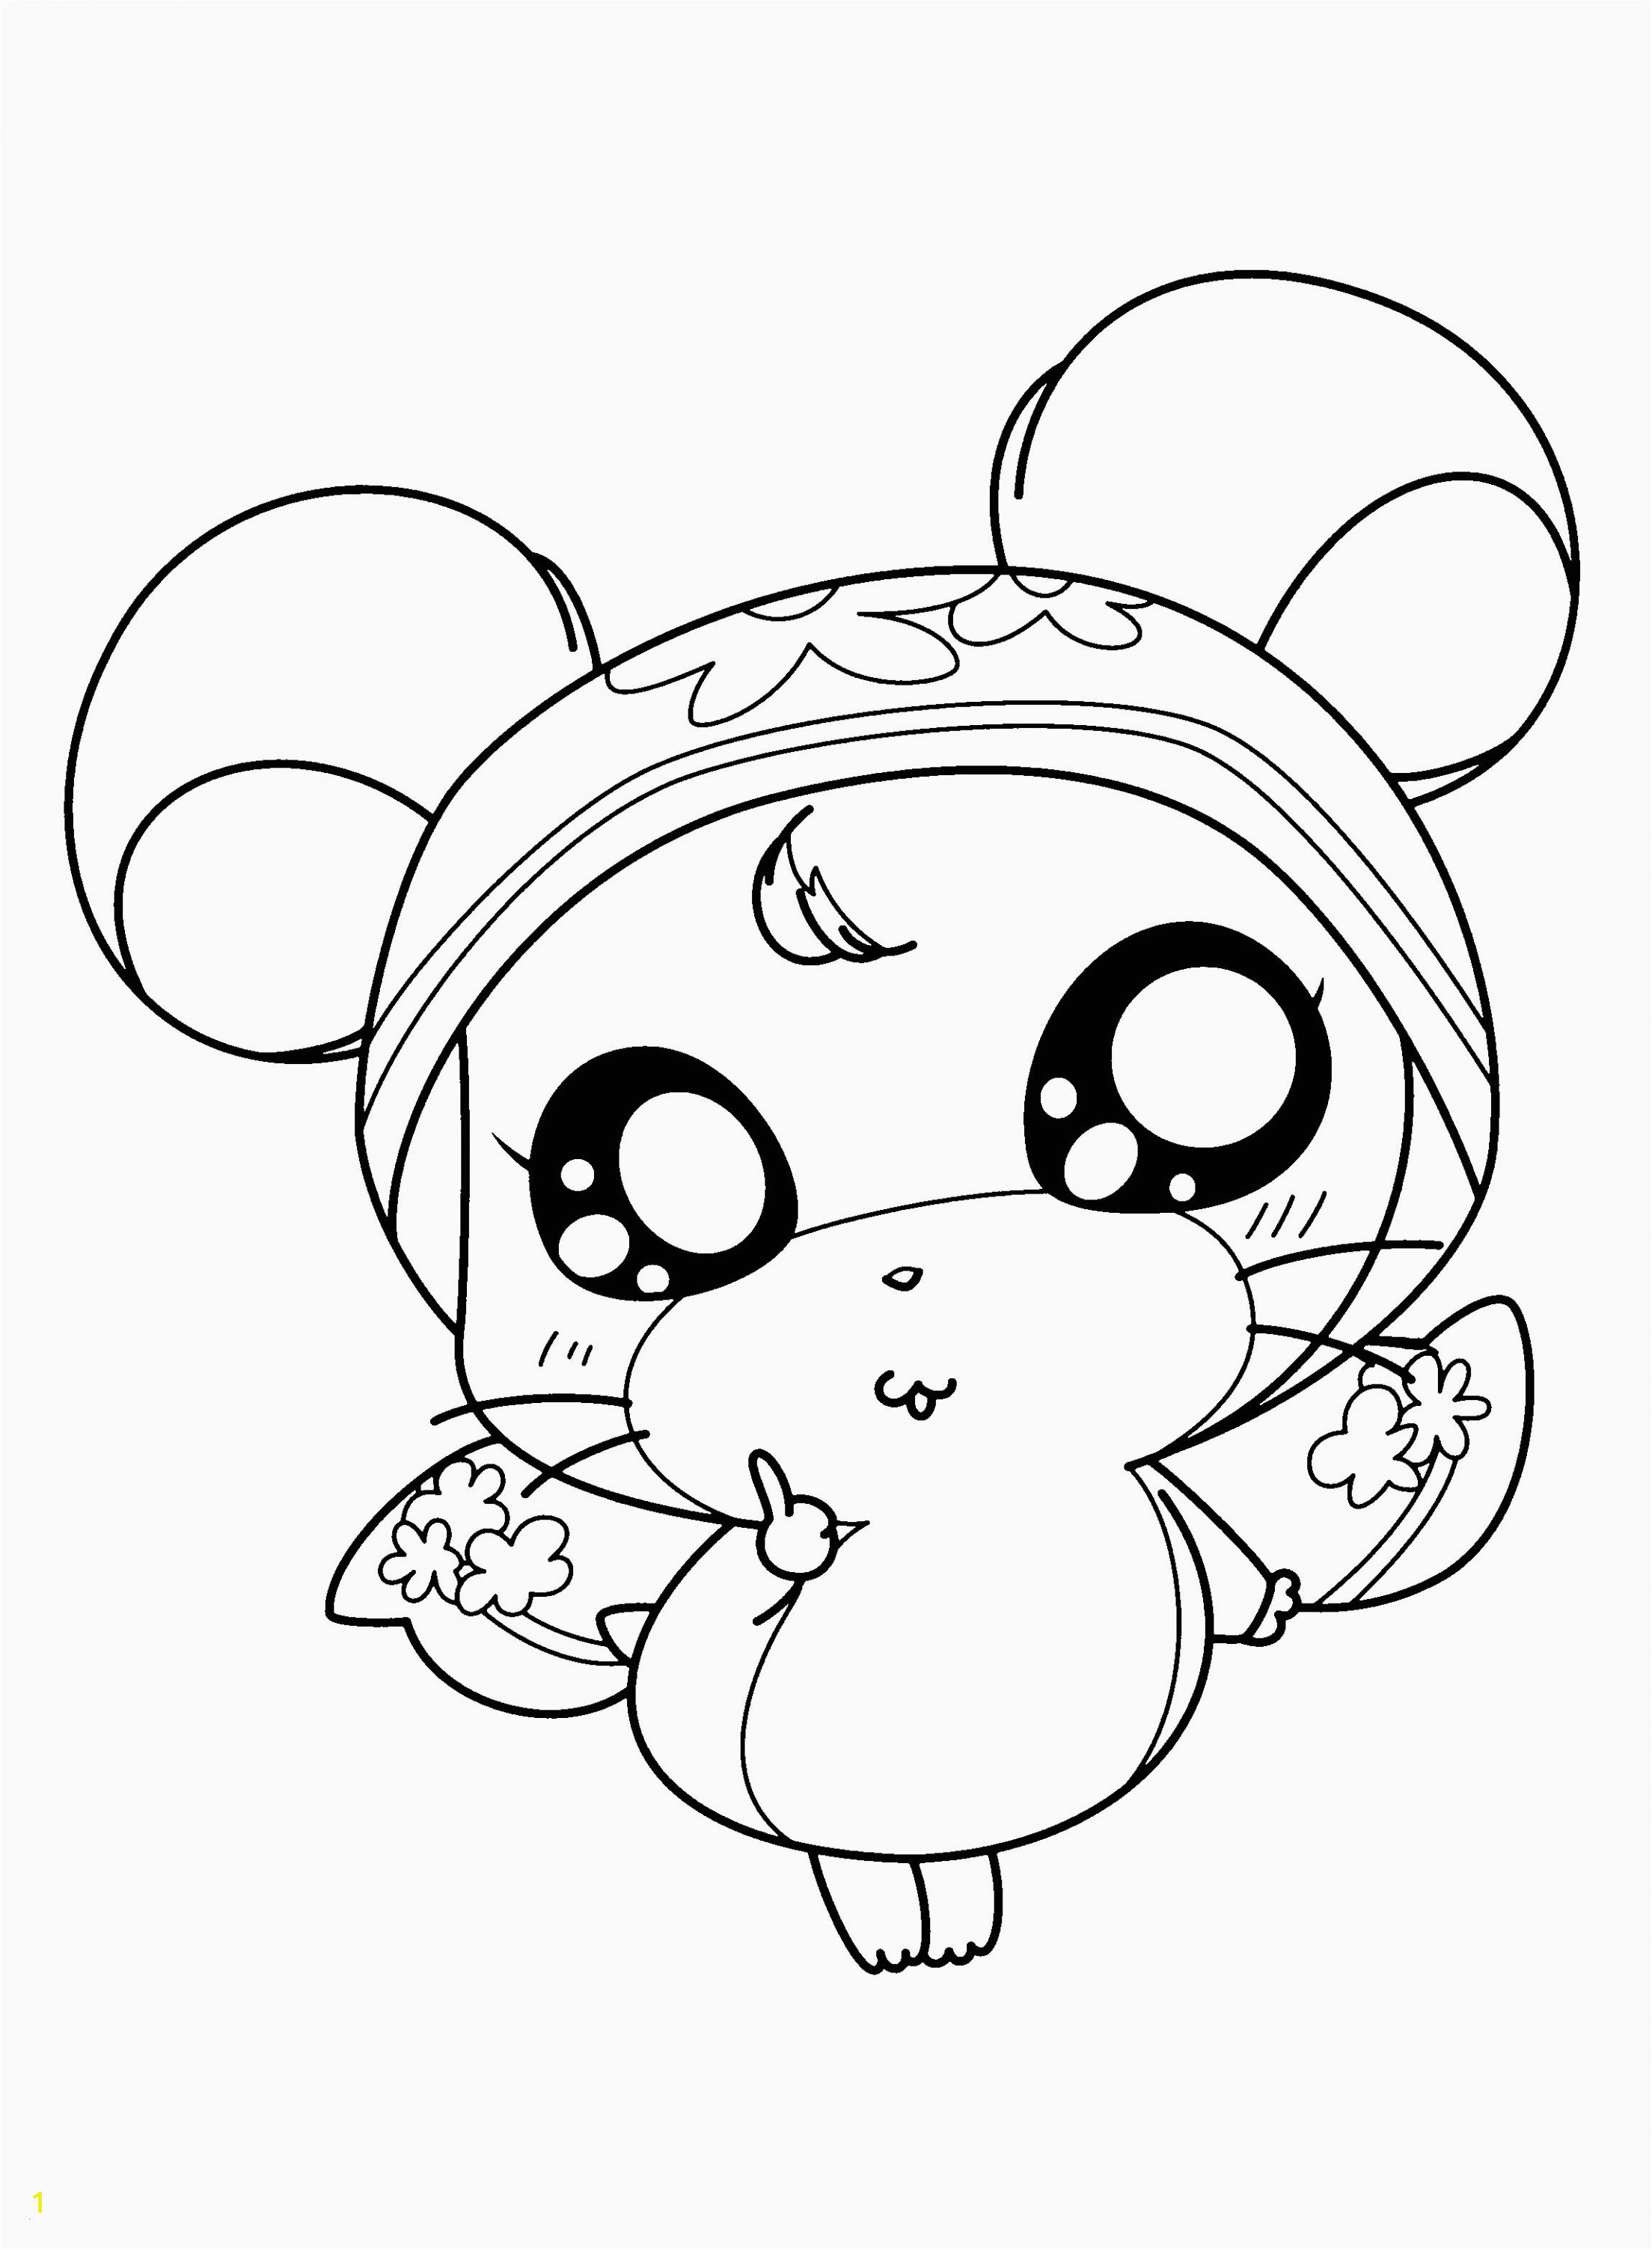 Cute Animal Coloring Pages Cute Animal Coloring Pages